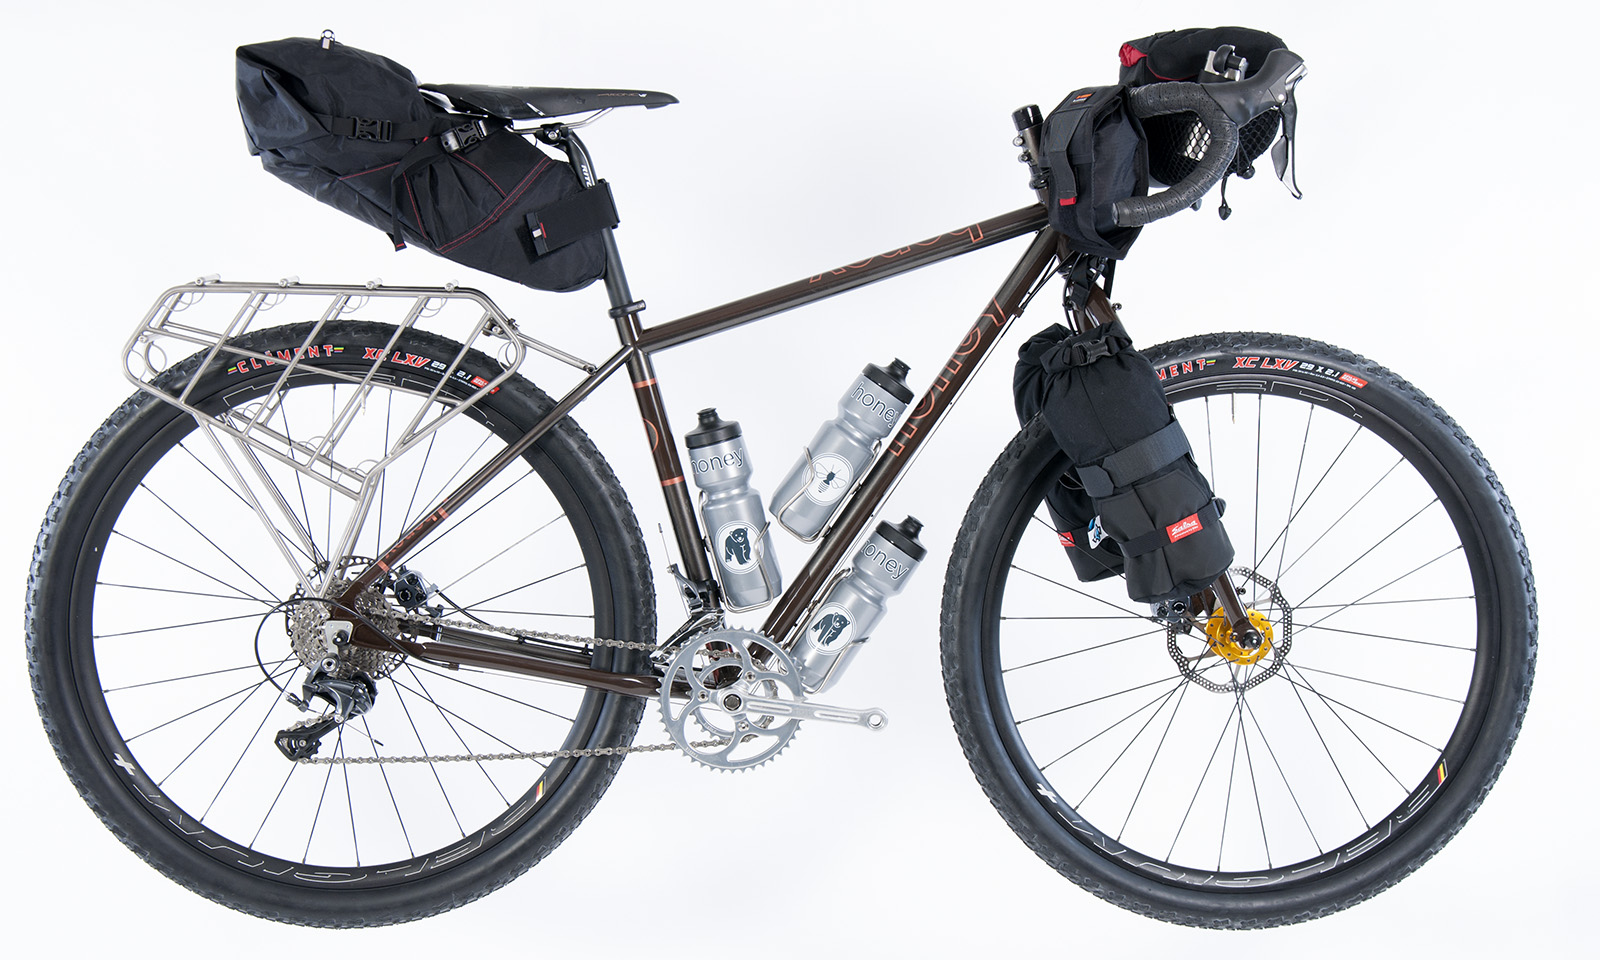 Packmule side seat, bar, fork bags